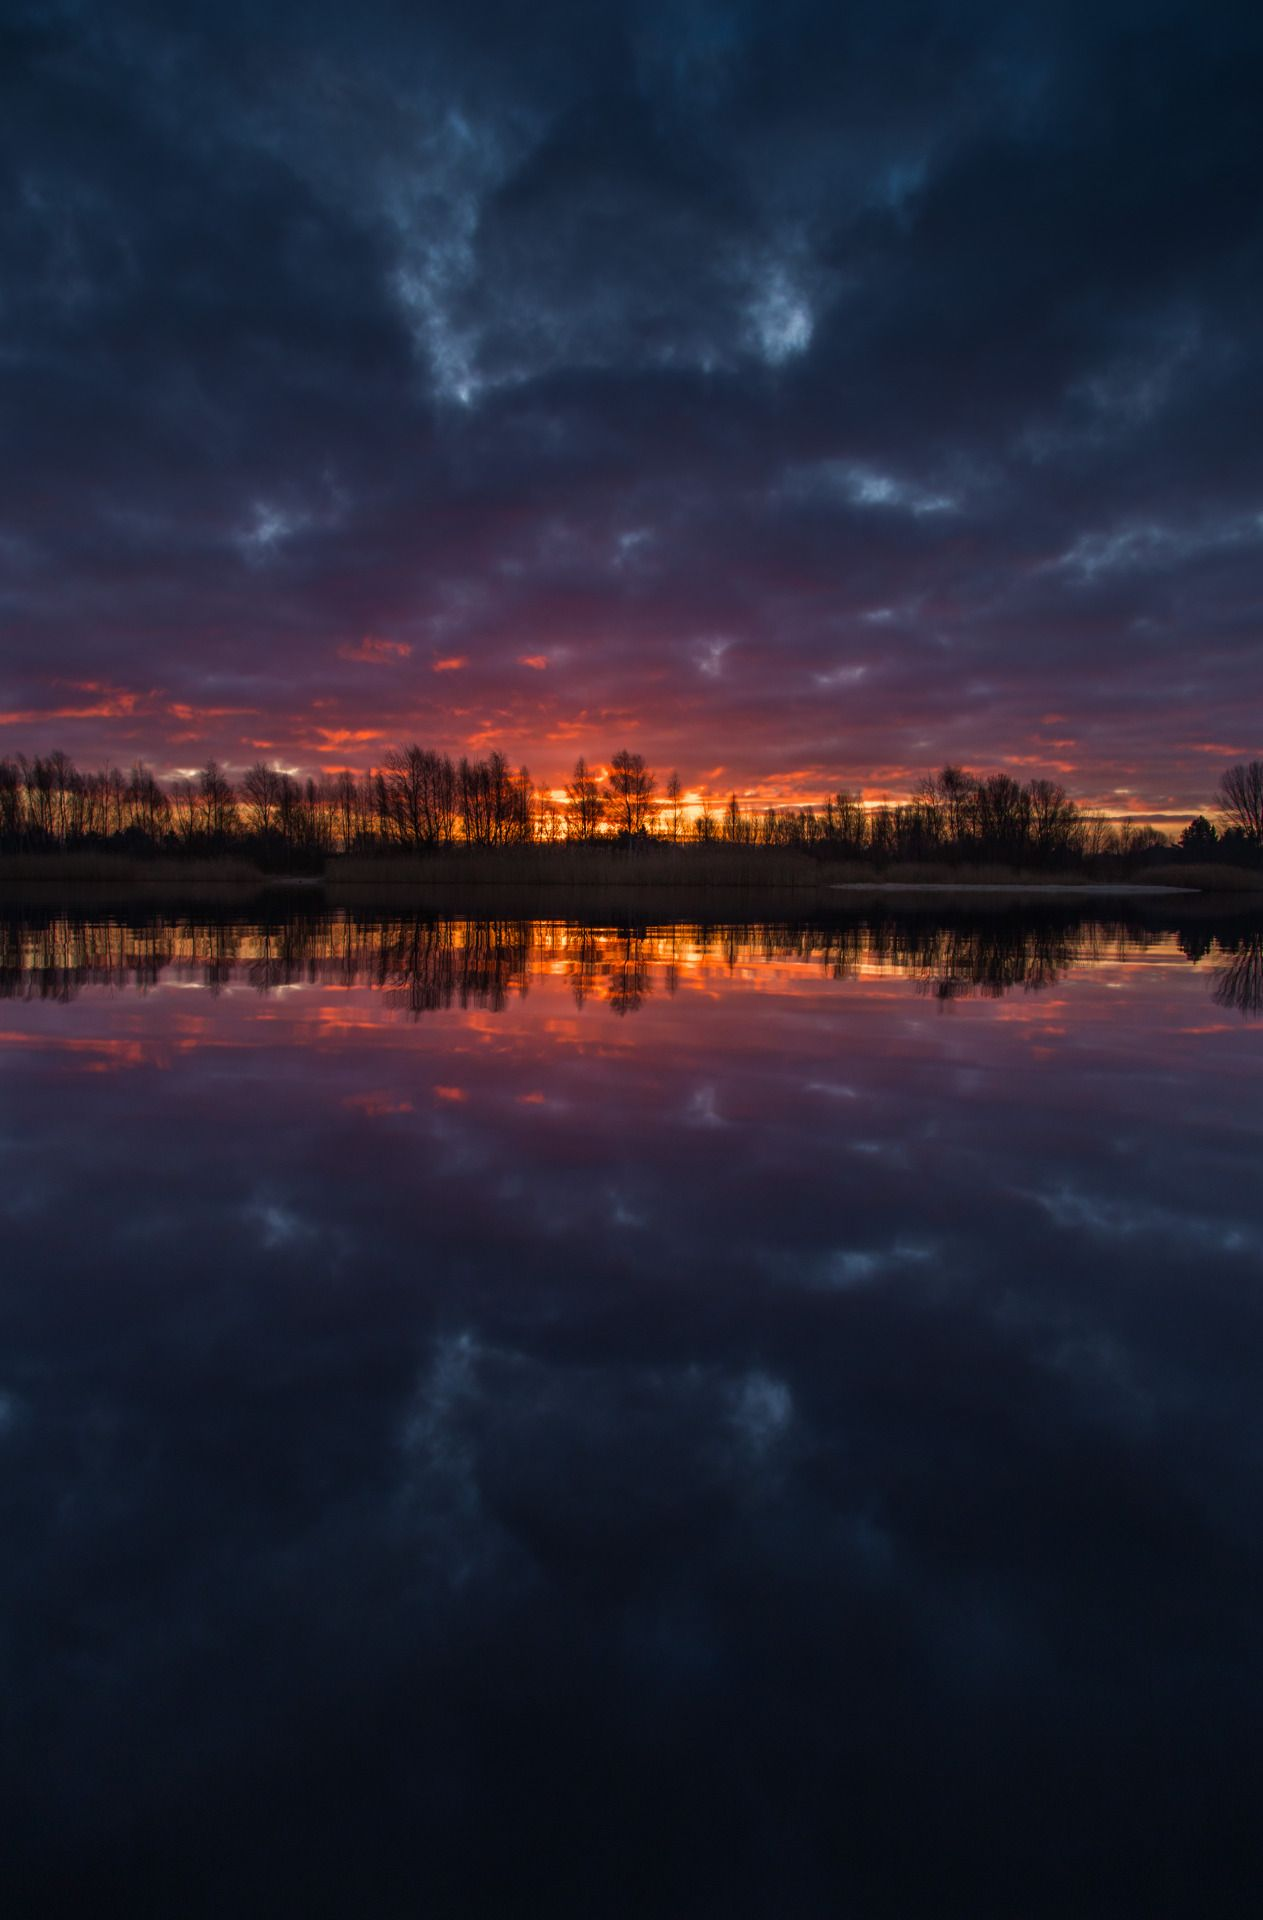 Dark reflections by Denny Bitte - #cloudy #lake #landscape #nature #on #original #photographers #photography #reflections #sunrise #tumblr